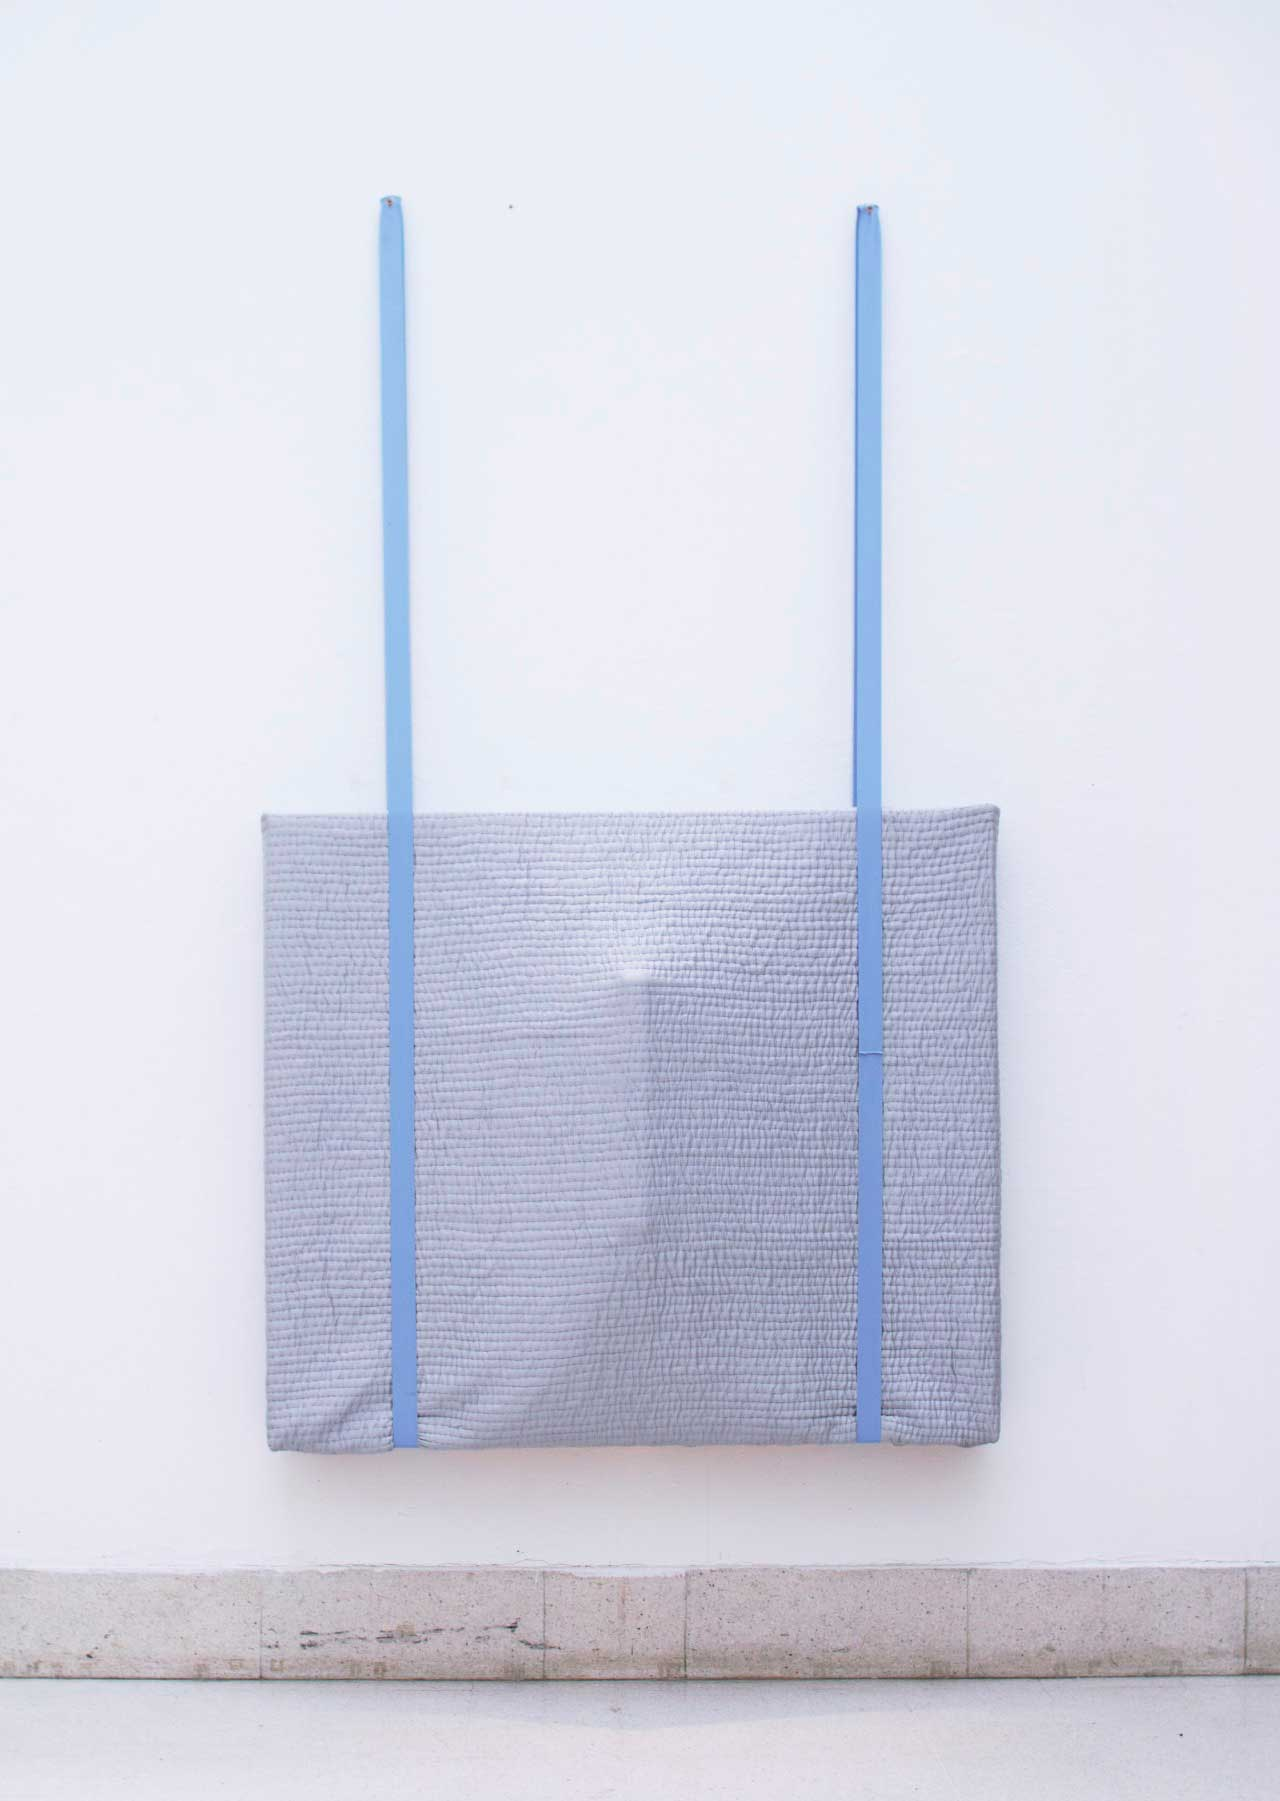 Adam, 2016, blanket, wood and spandex band, 51x59x7.8 (inches)